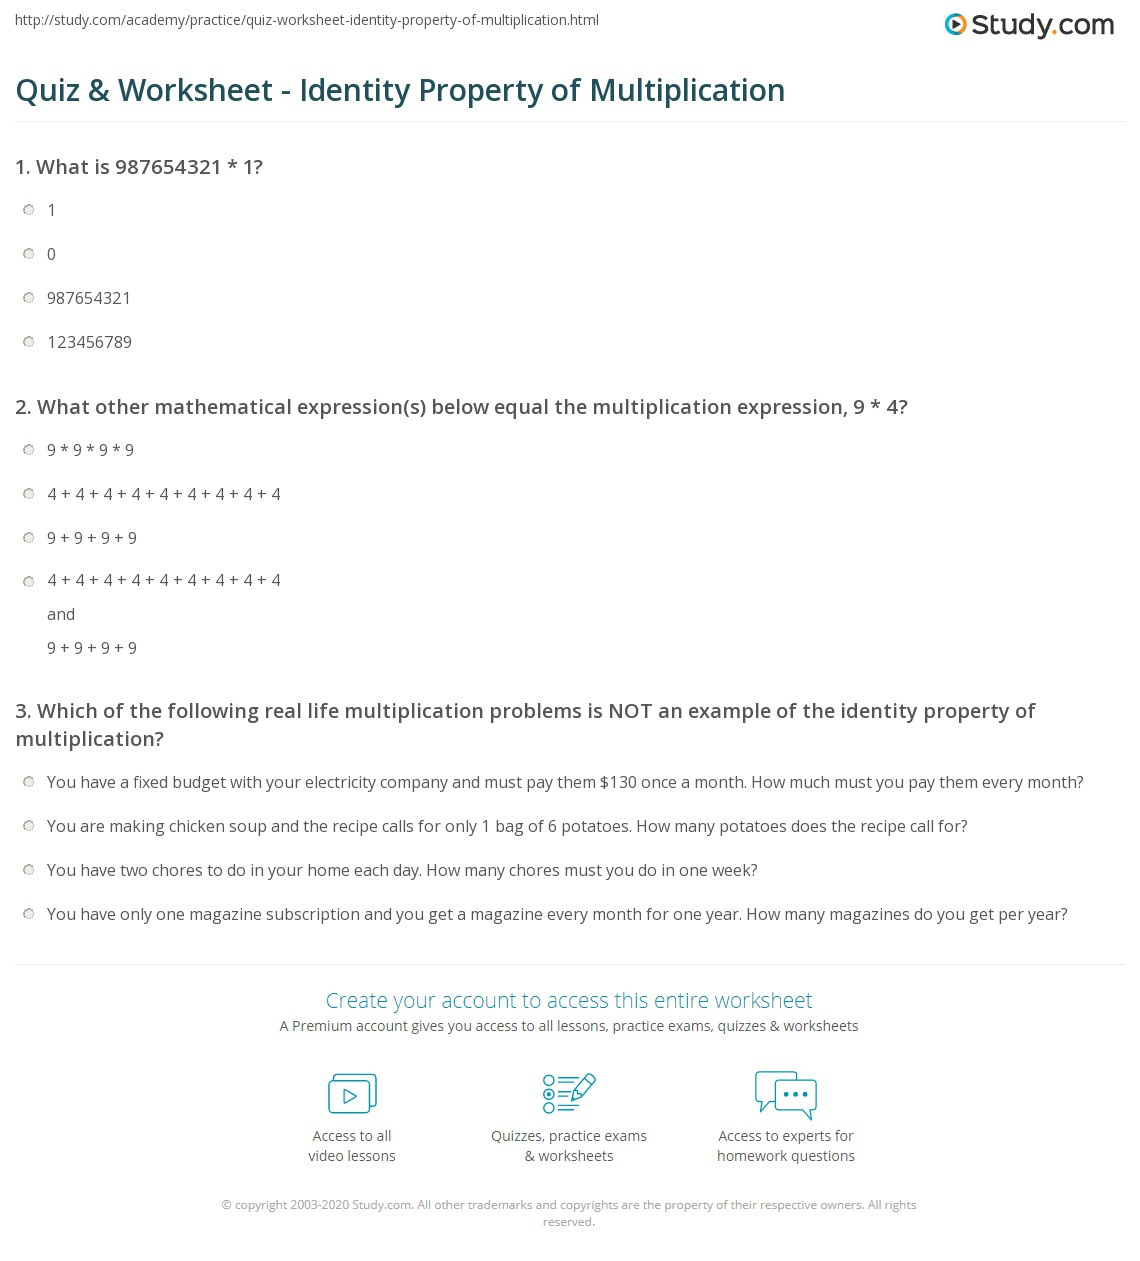 Quiz & Worksheet - Identity Property of Multiplication | Study.com